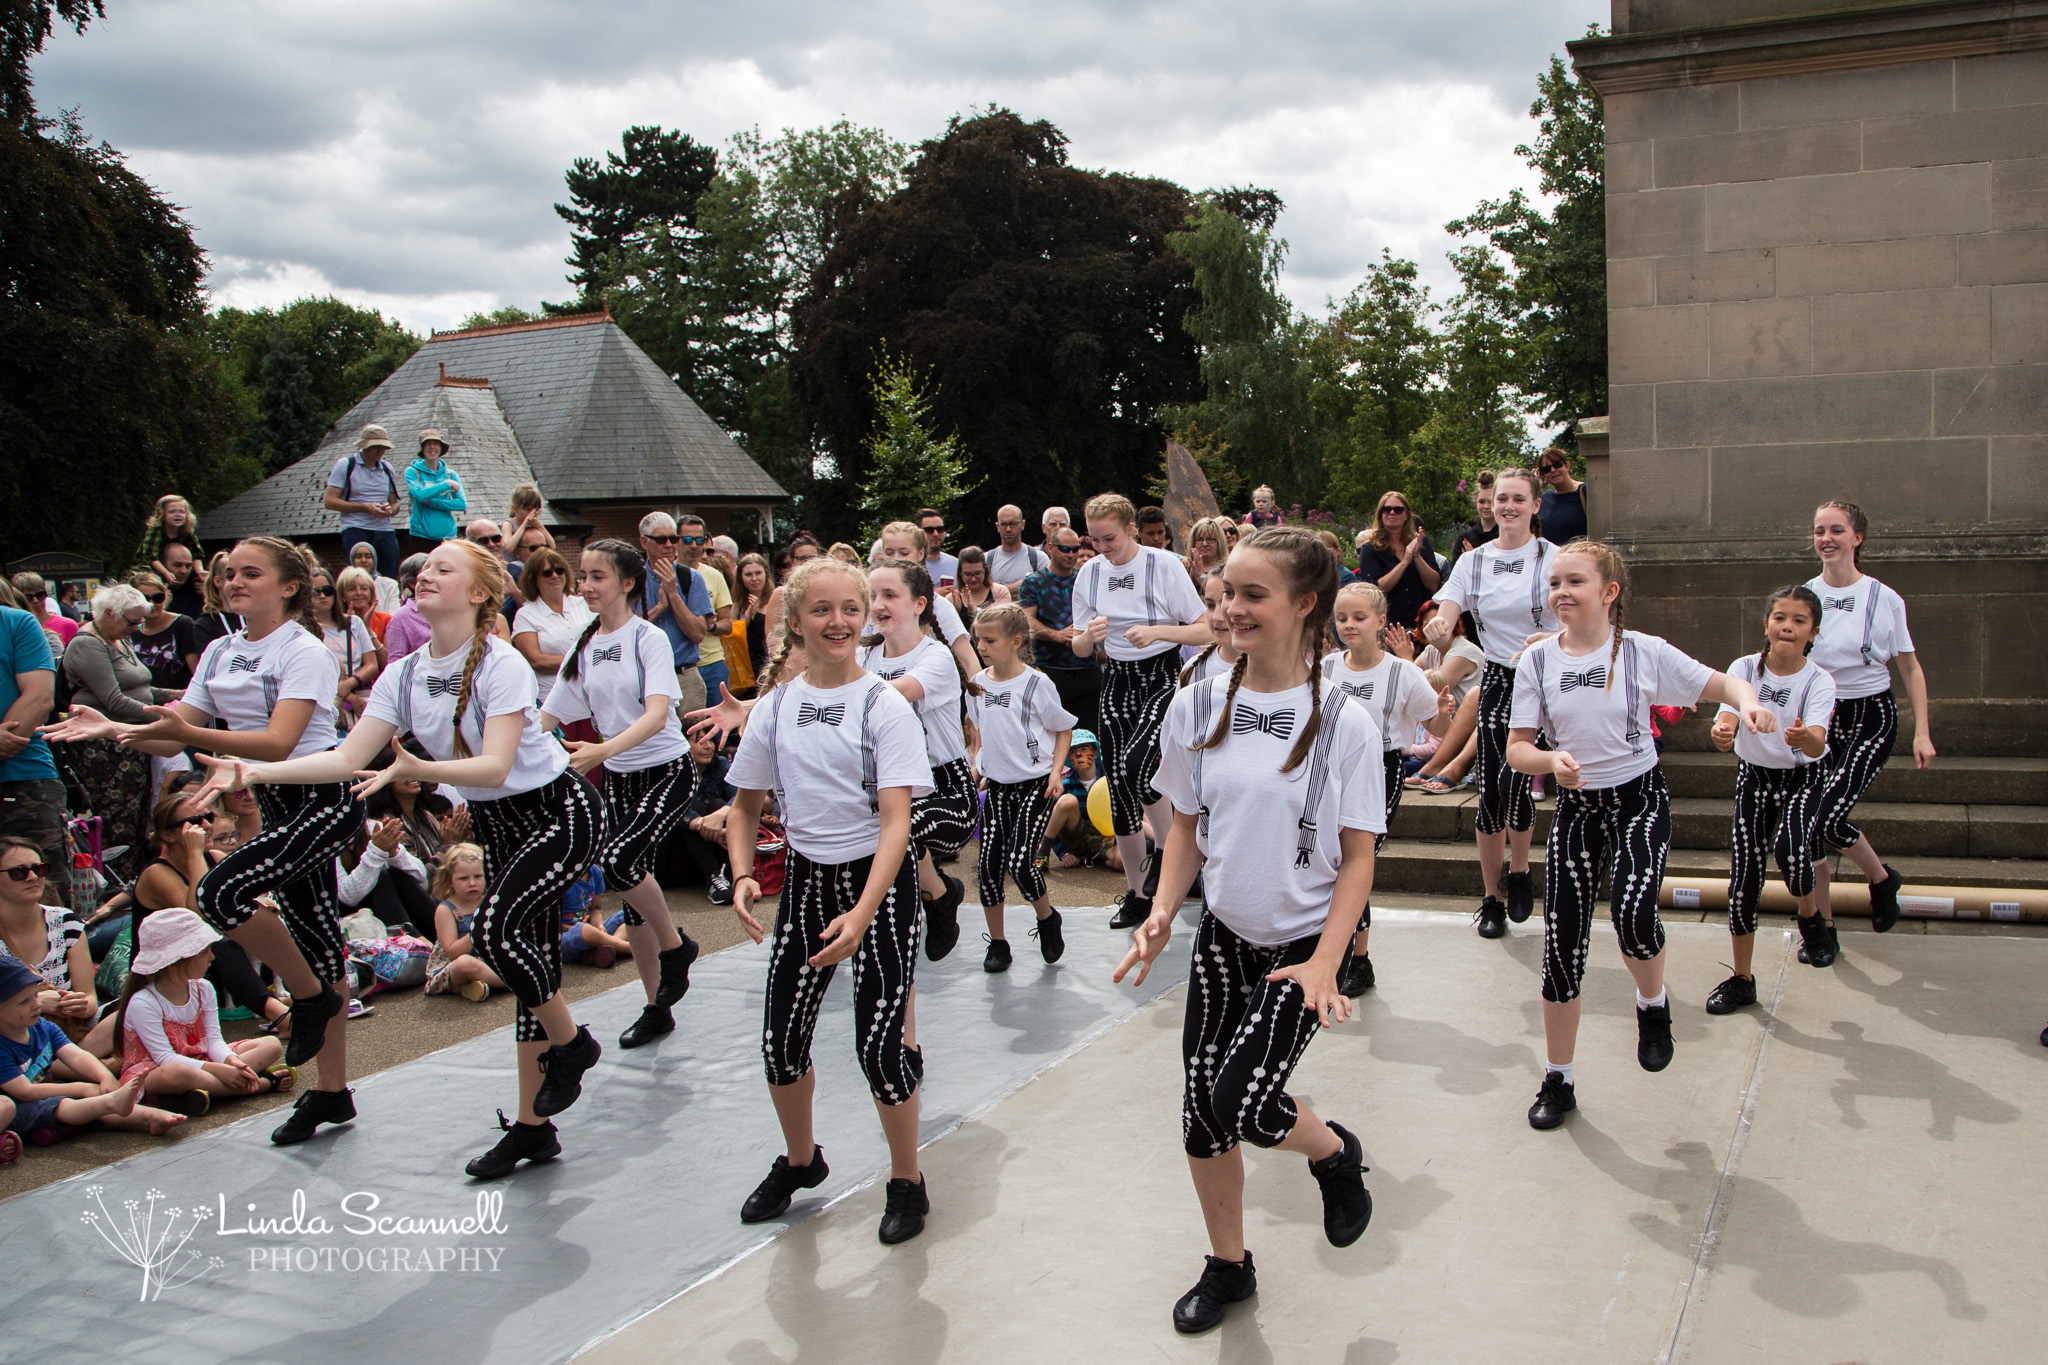 Dancers from Leamington and Warwick Academy of Dance entertaining the crowds at Art in the Park 2017